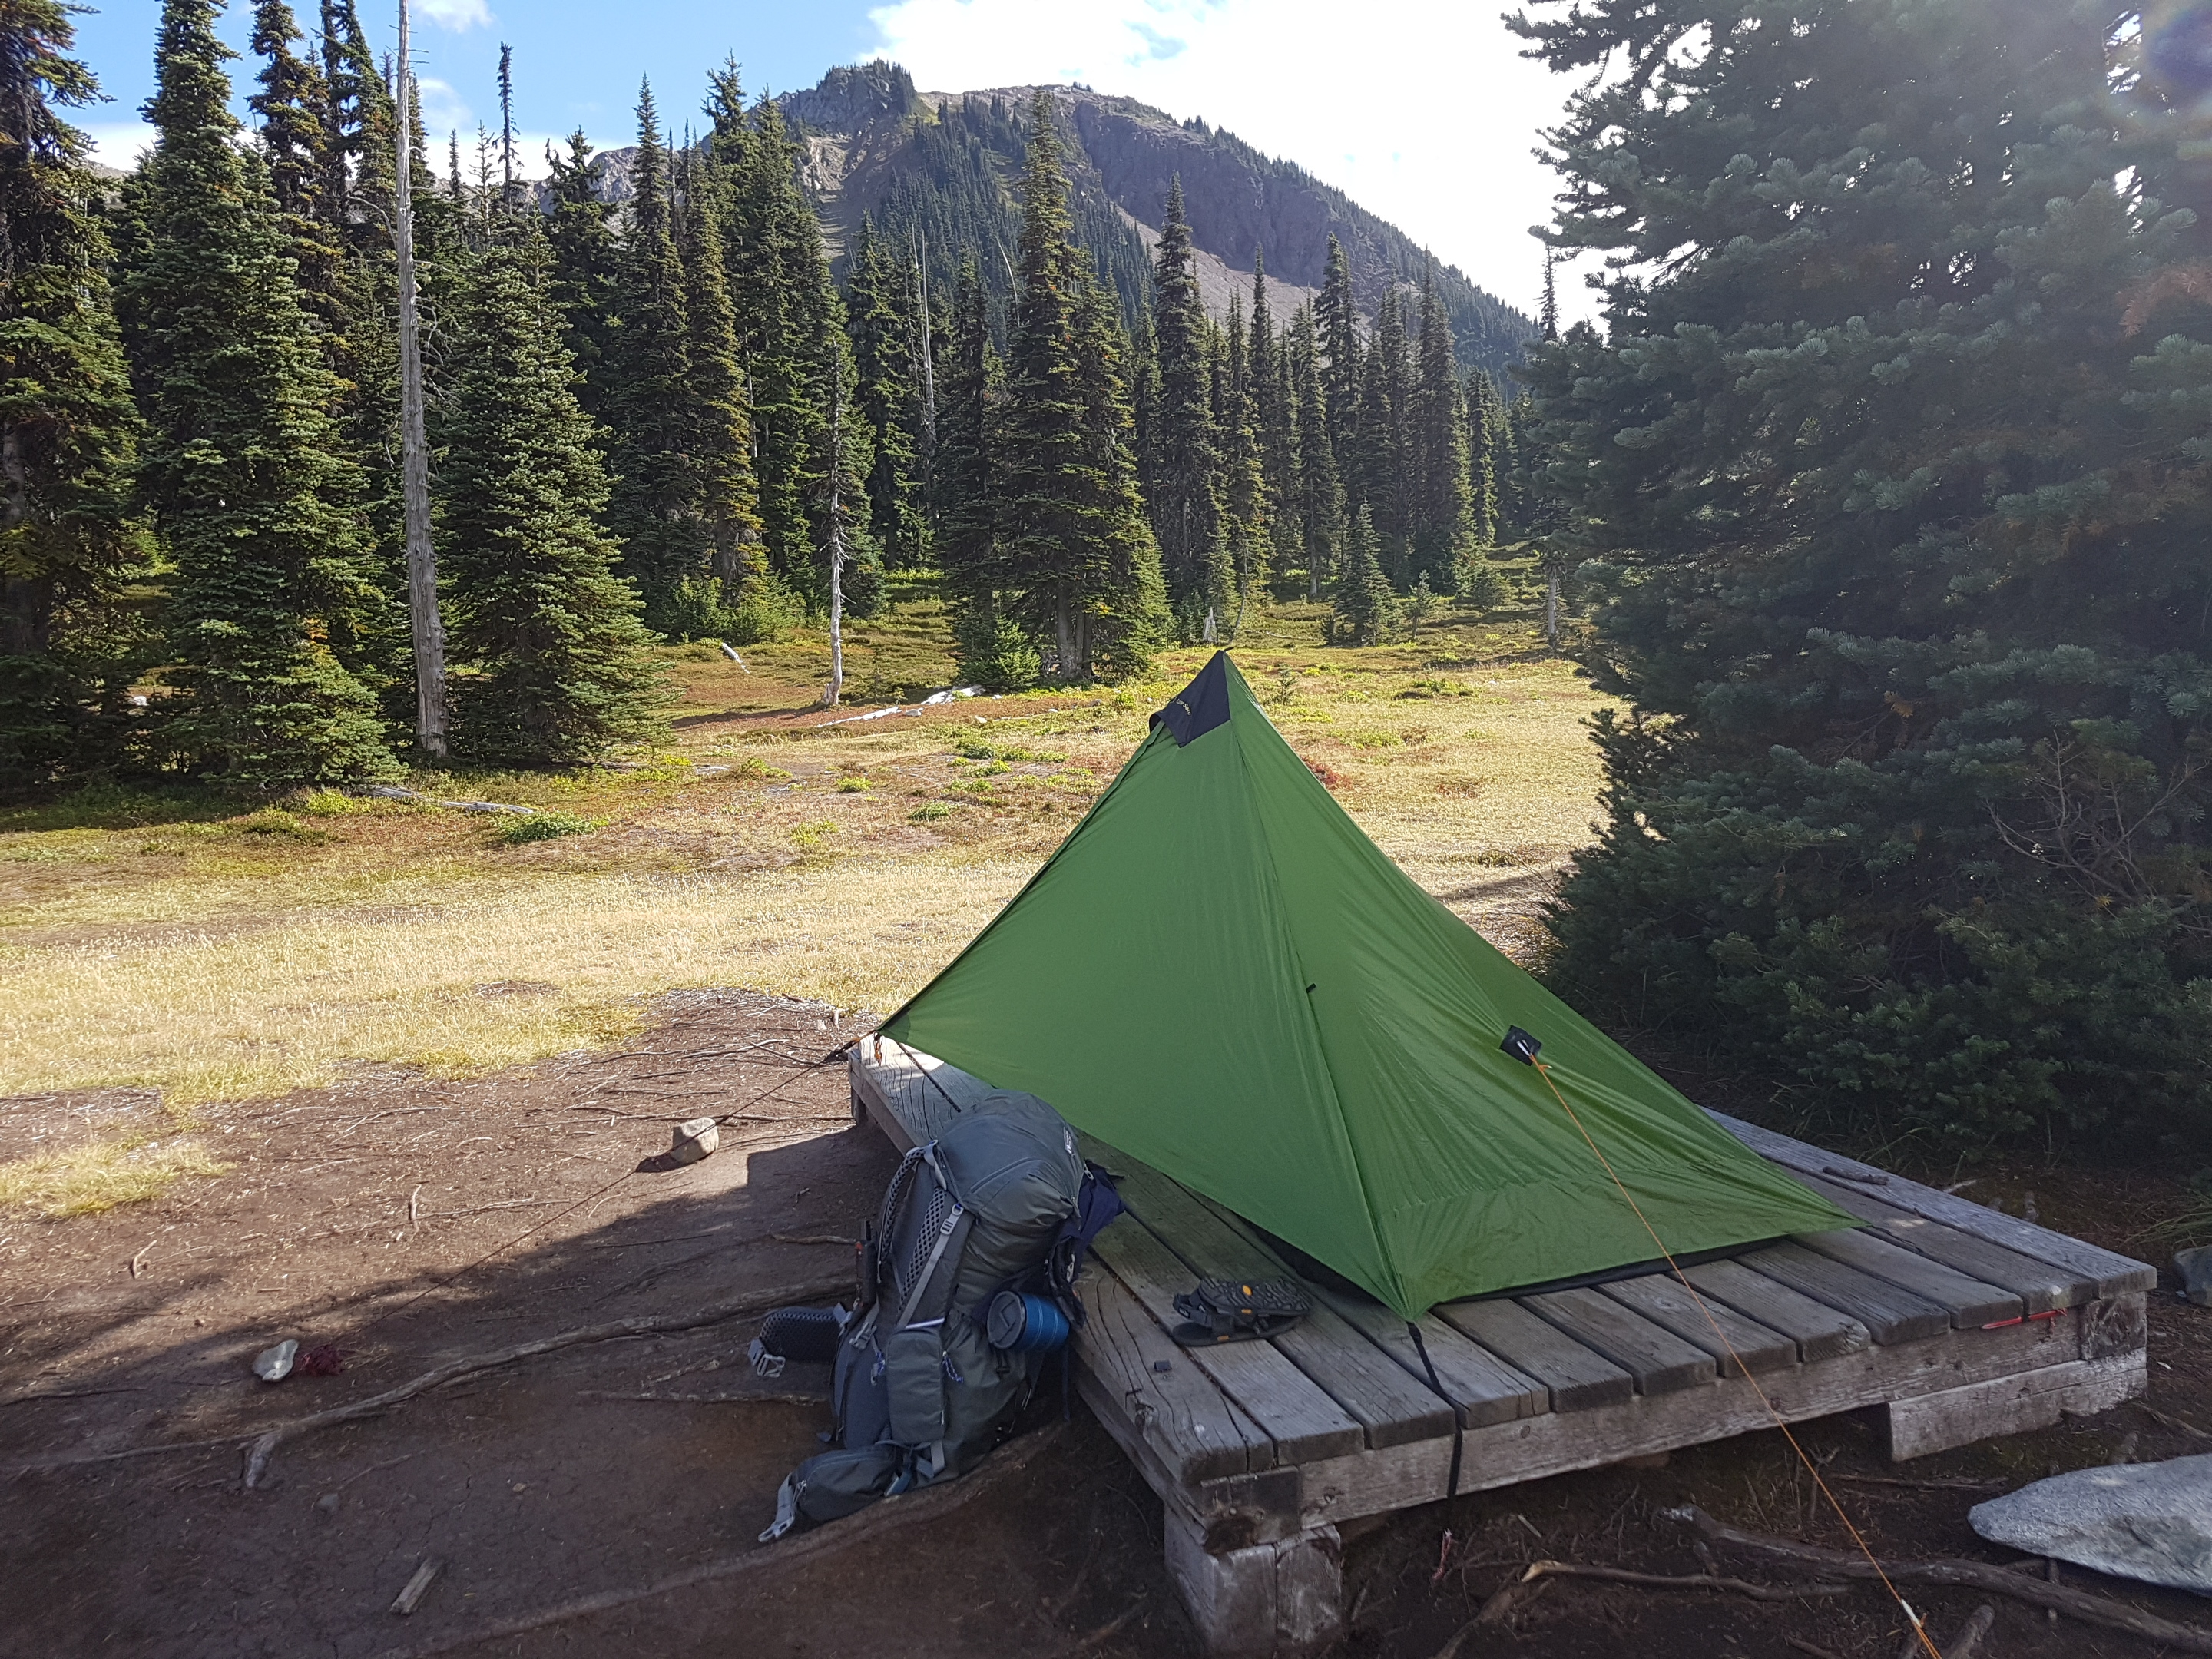 Success! & A Review of My Six Moon Designs Lunar Solo Tent - The Trek